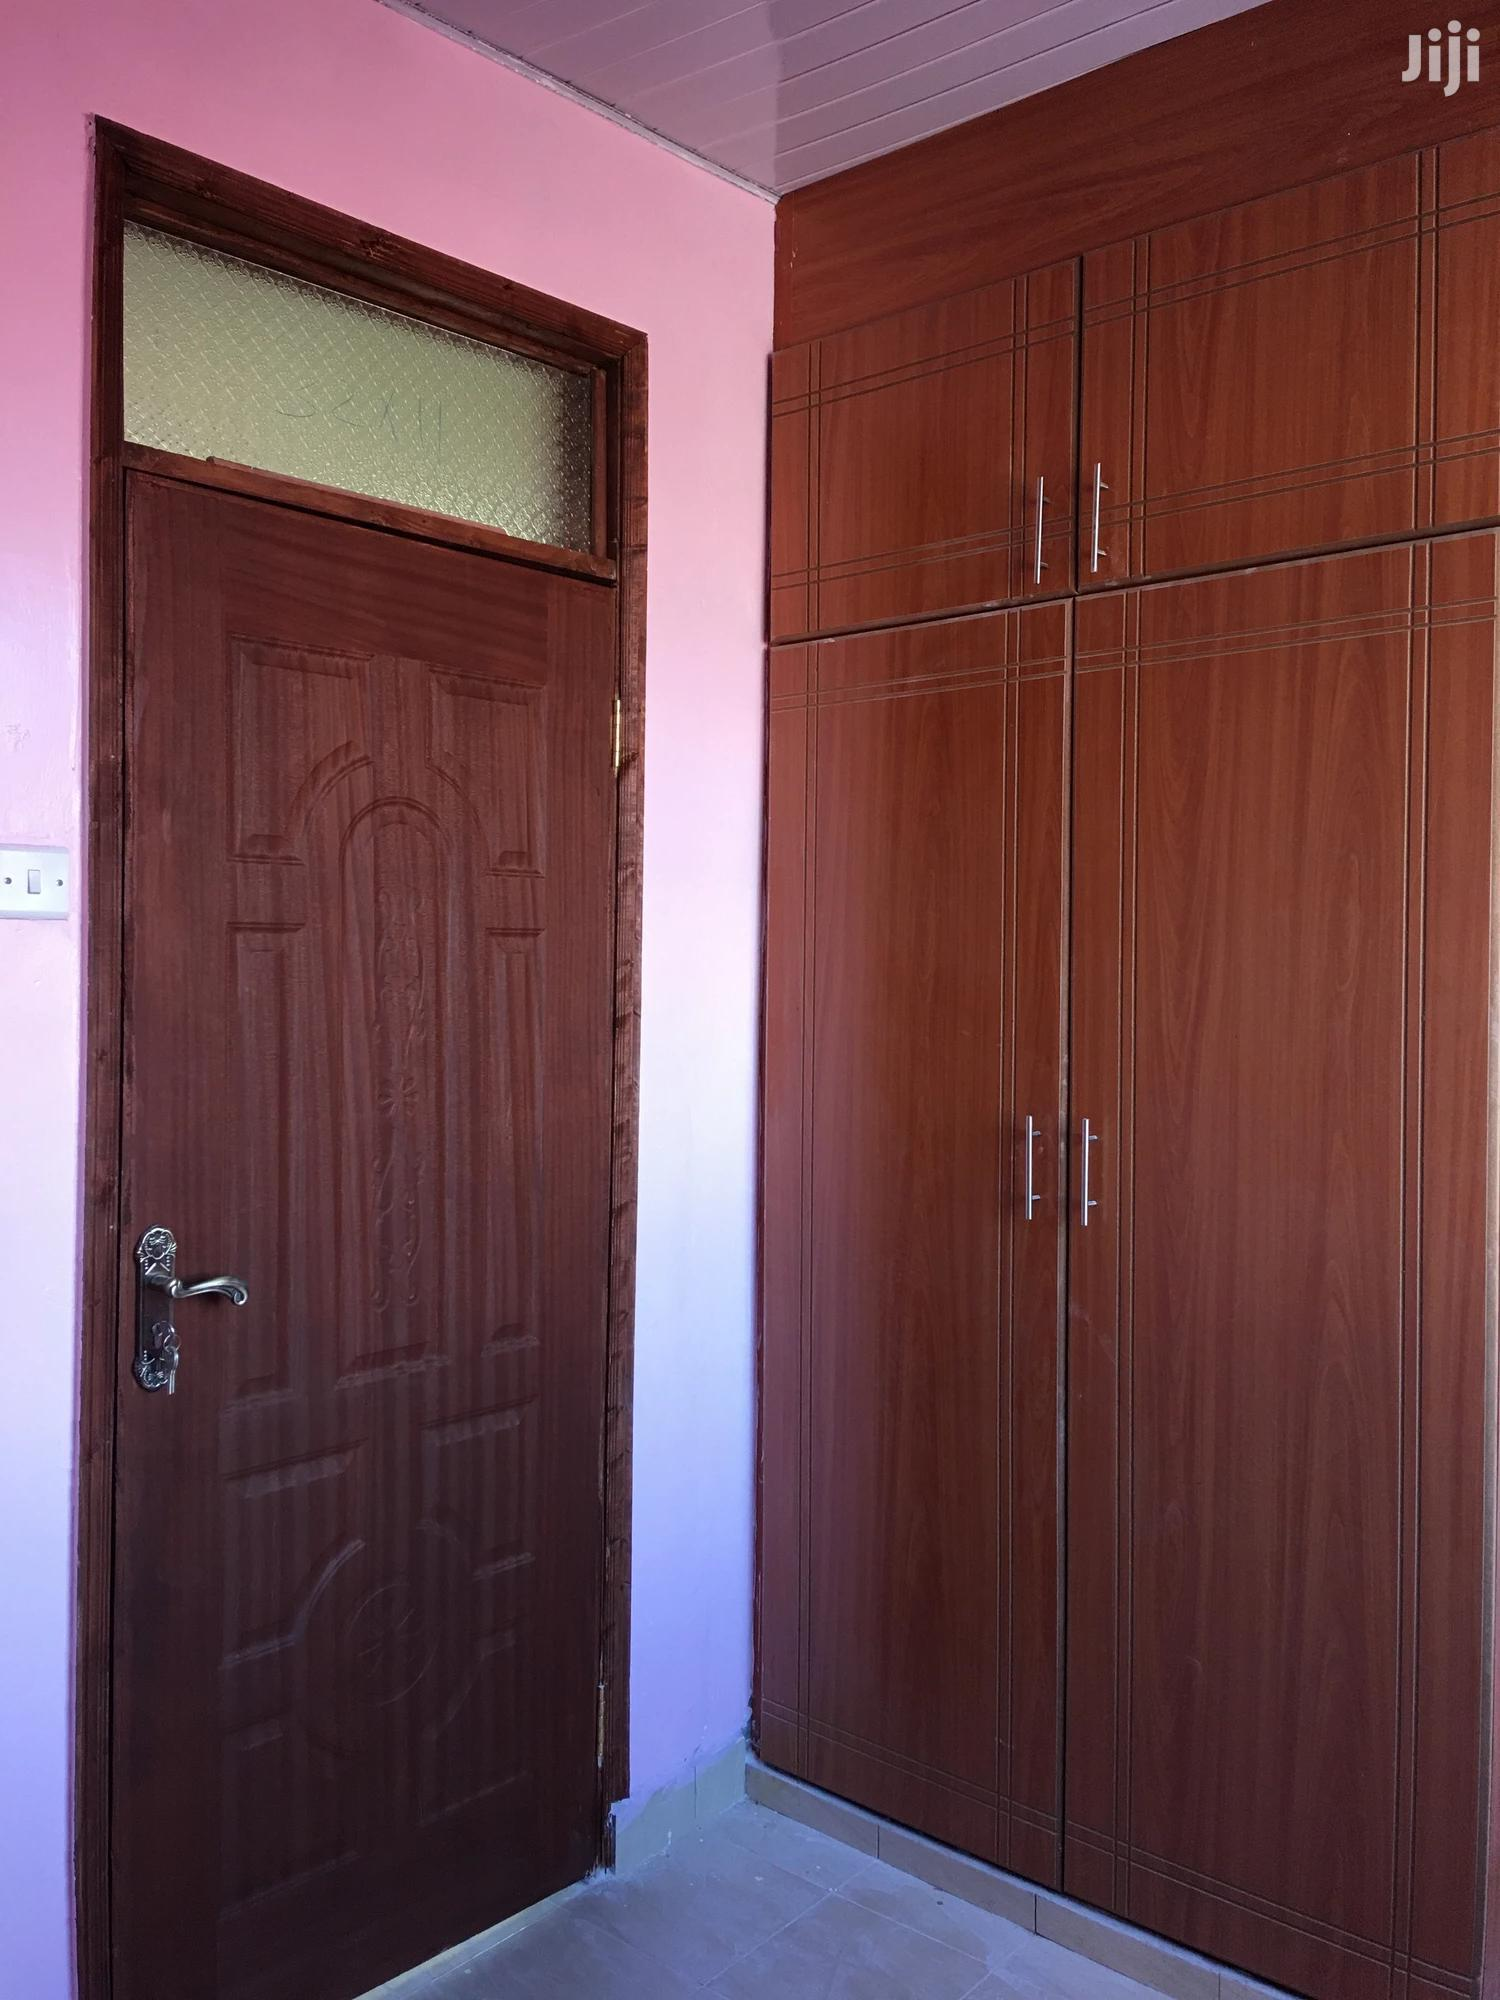 House To Rent In Kisumu Lolwe Estate | Houses & Apartments For Rent for sale in Migosi, Kisumu, Kenya